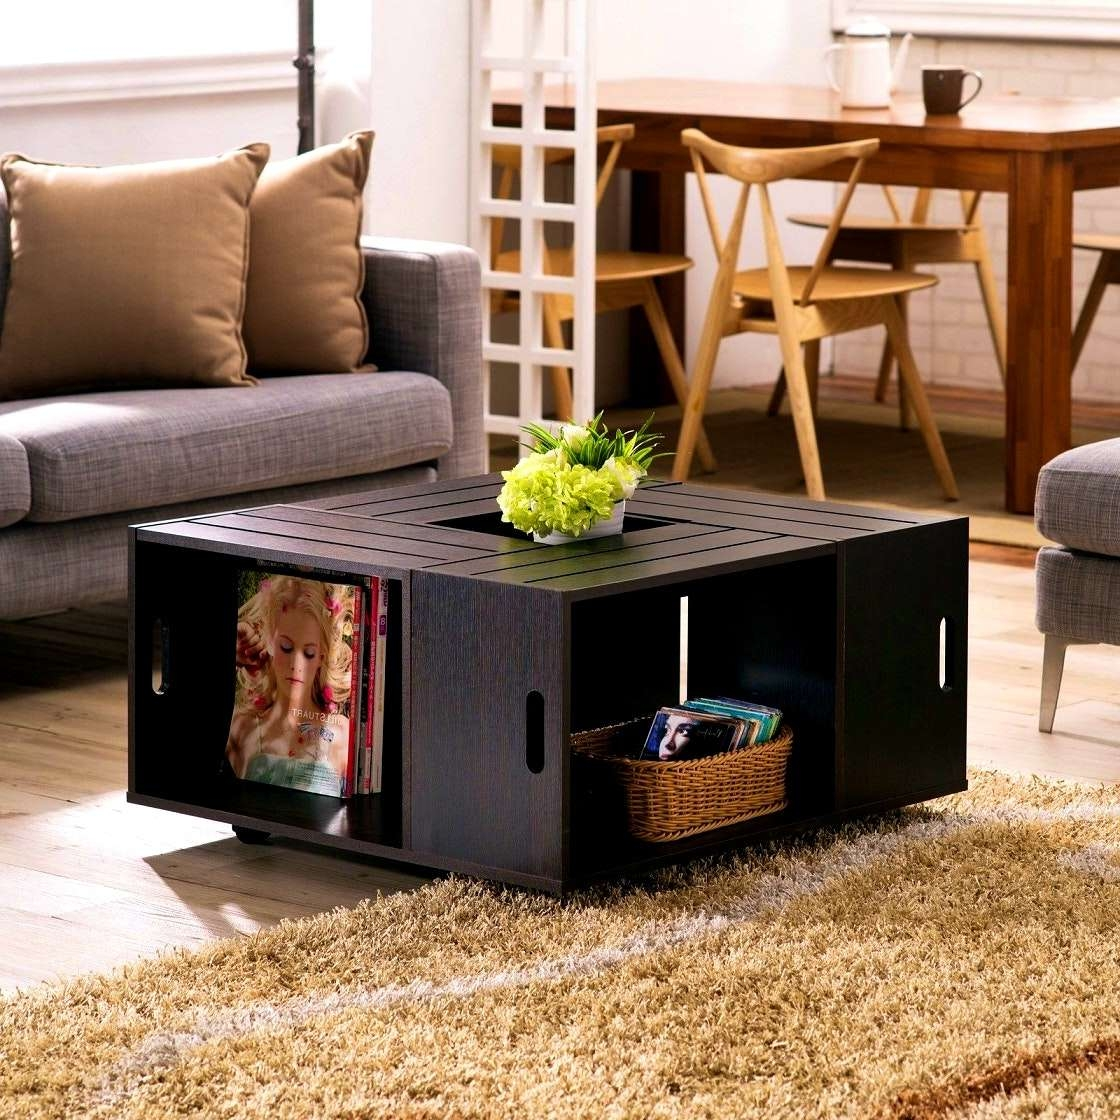 2018 Square Coffee Tables With Storages In Uncategorized (View 1 of 20)